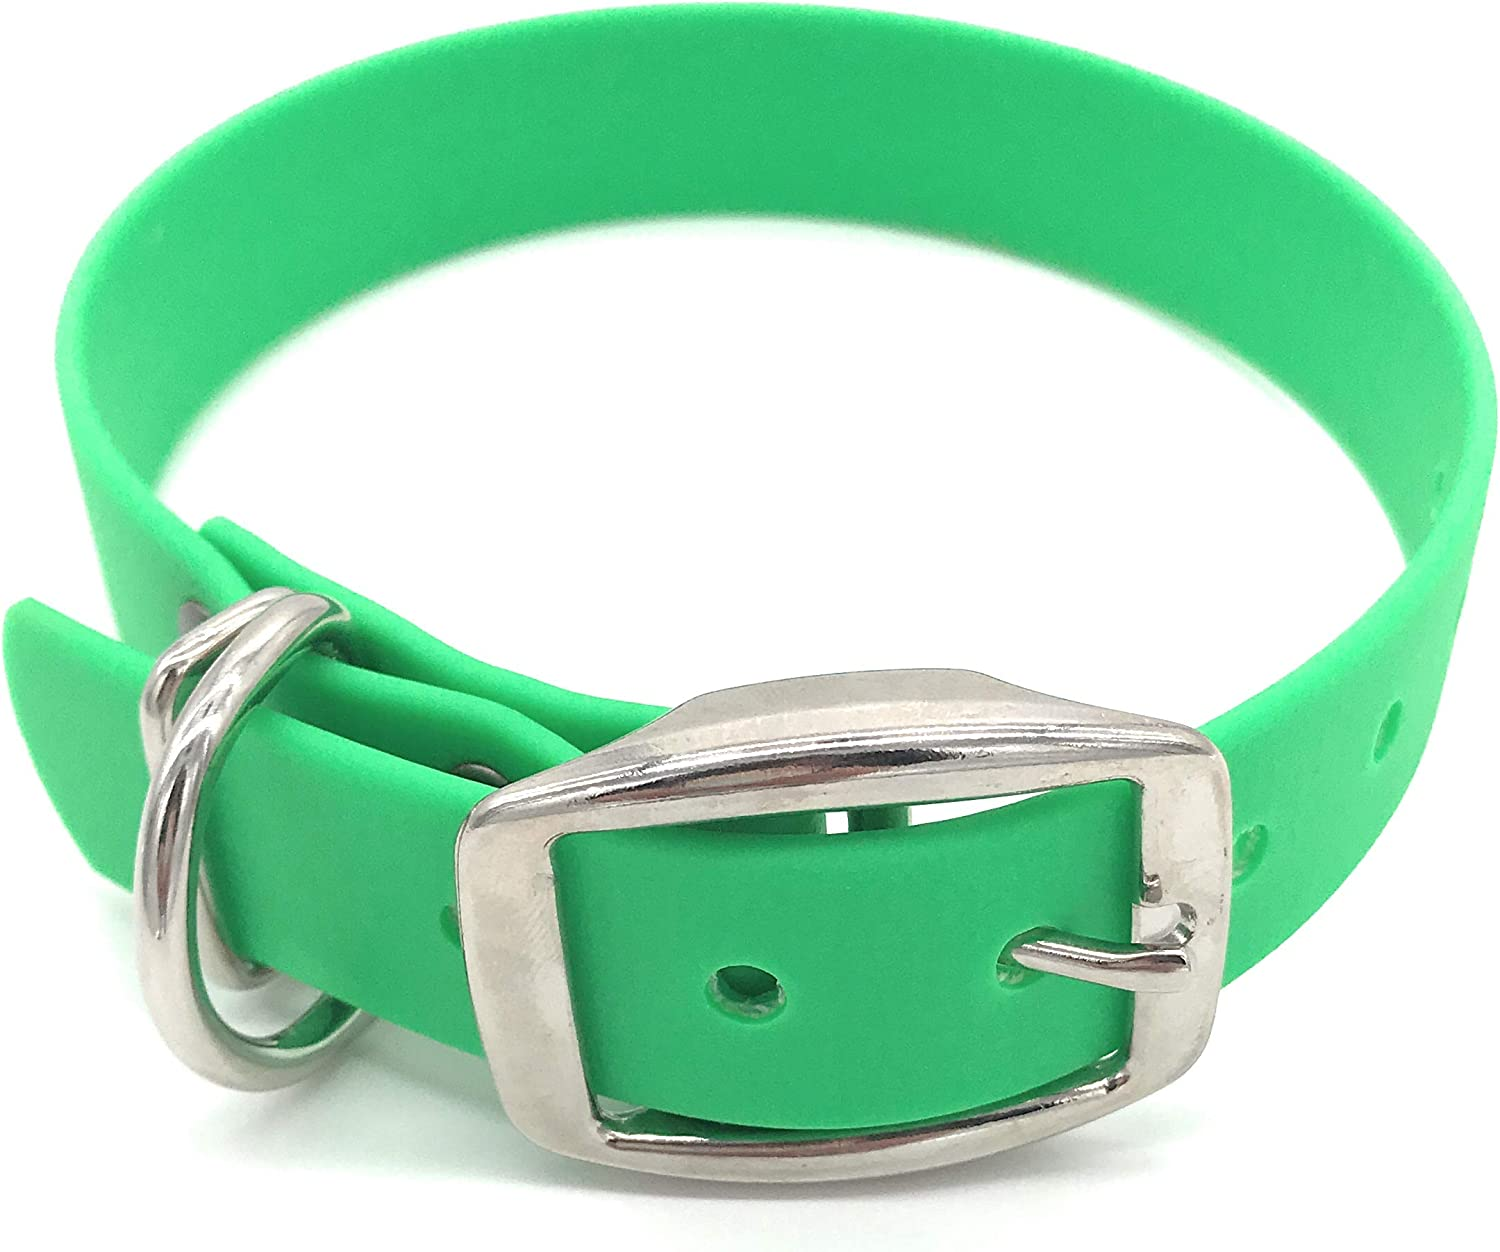 Biothane Dog Collars, Dog Collar, Buy a Collar Help a Veteran. Weather and Waterproof Puppy and Dog Collar with Nickel Plated Finish for Large Dogs and XL Dogs (16.521 inches, Green)